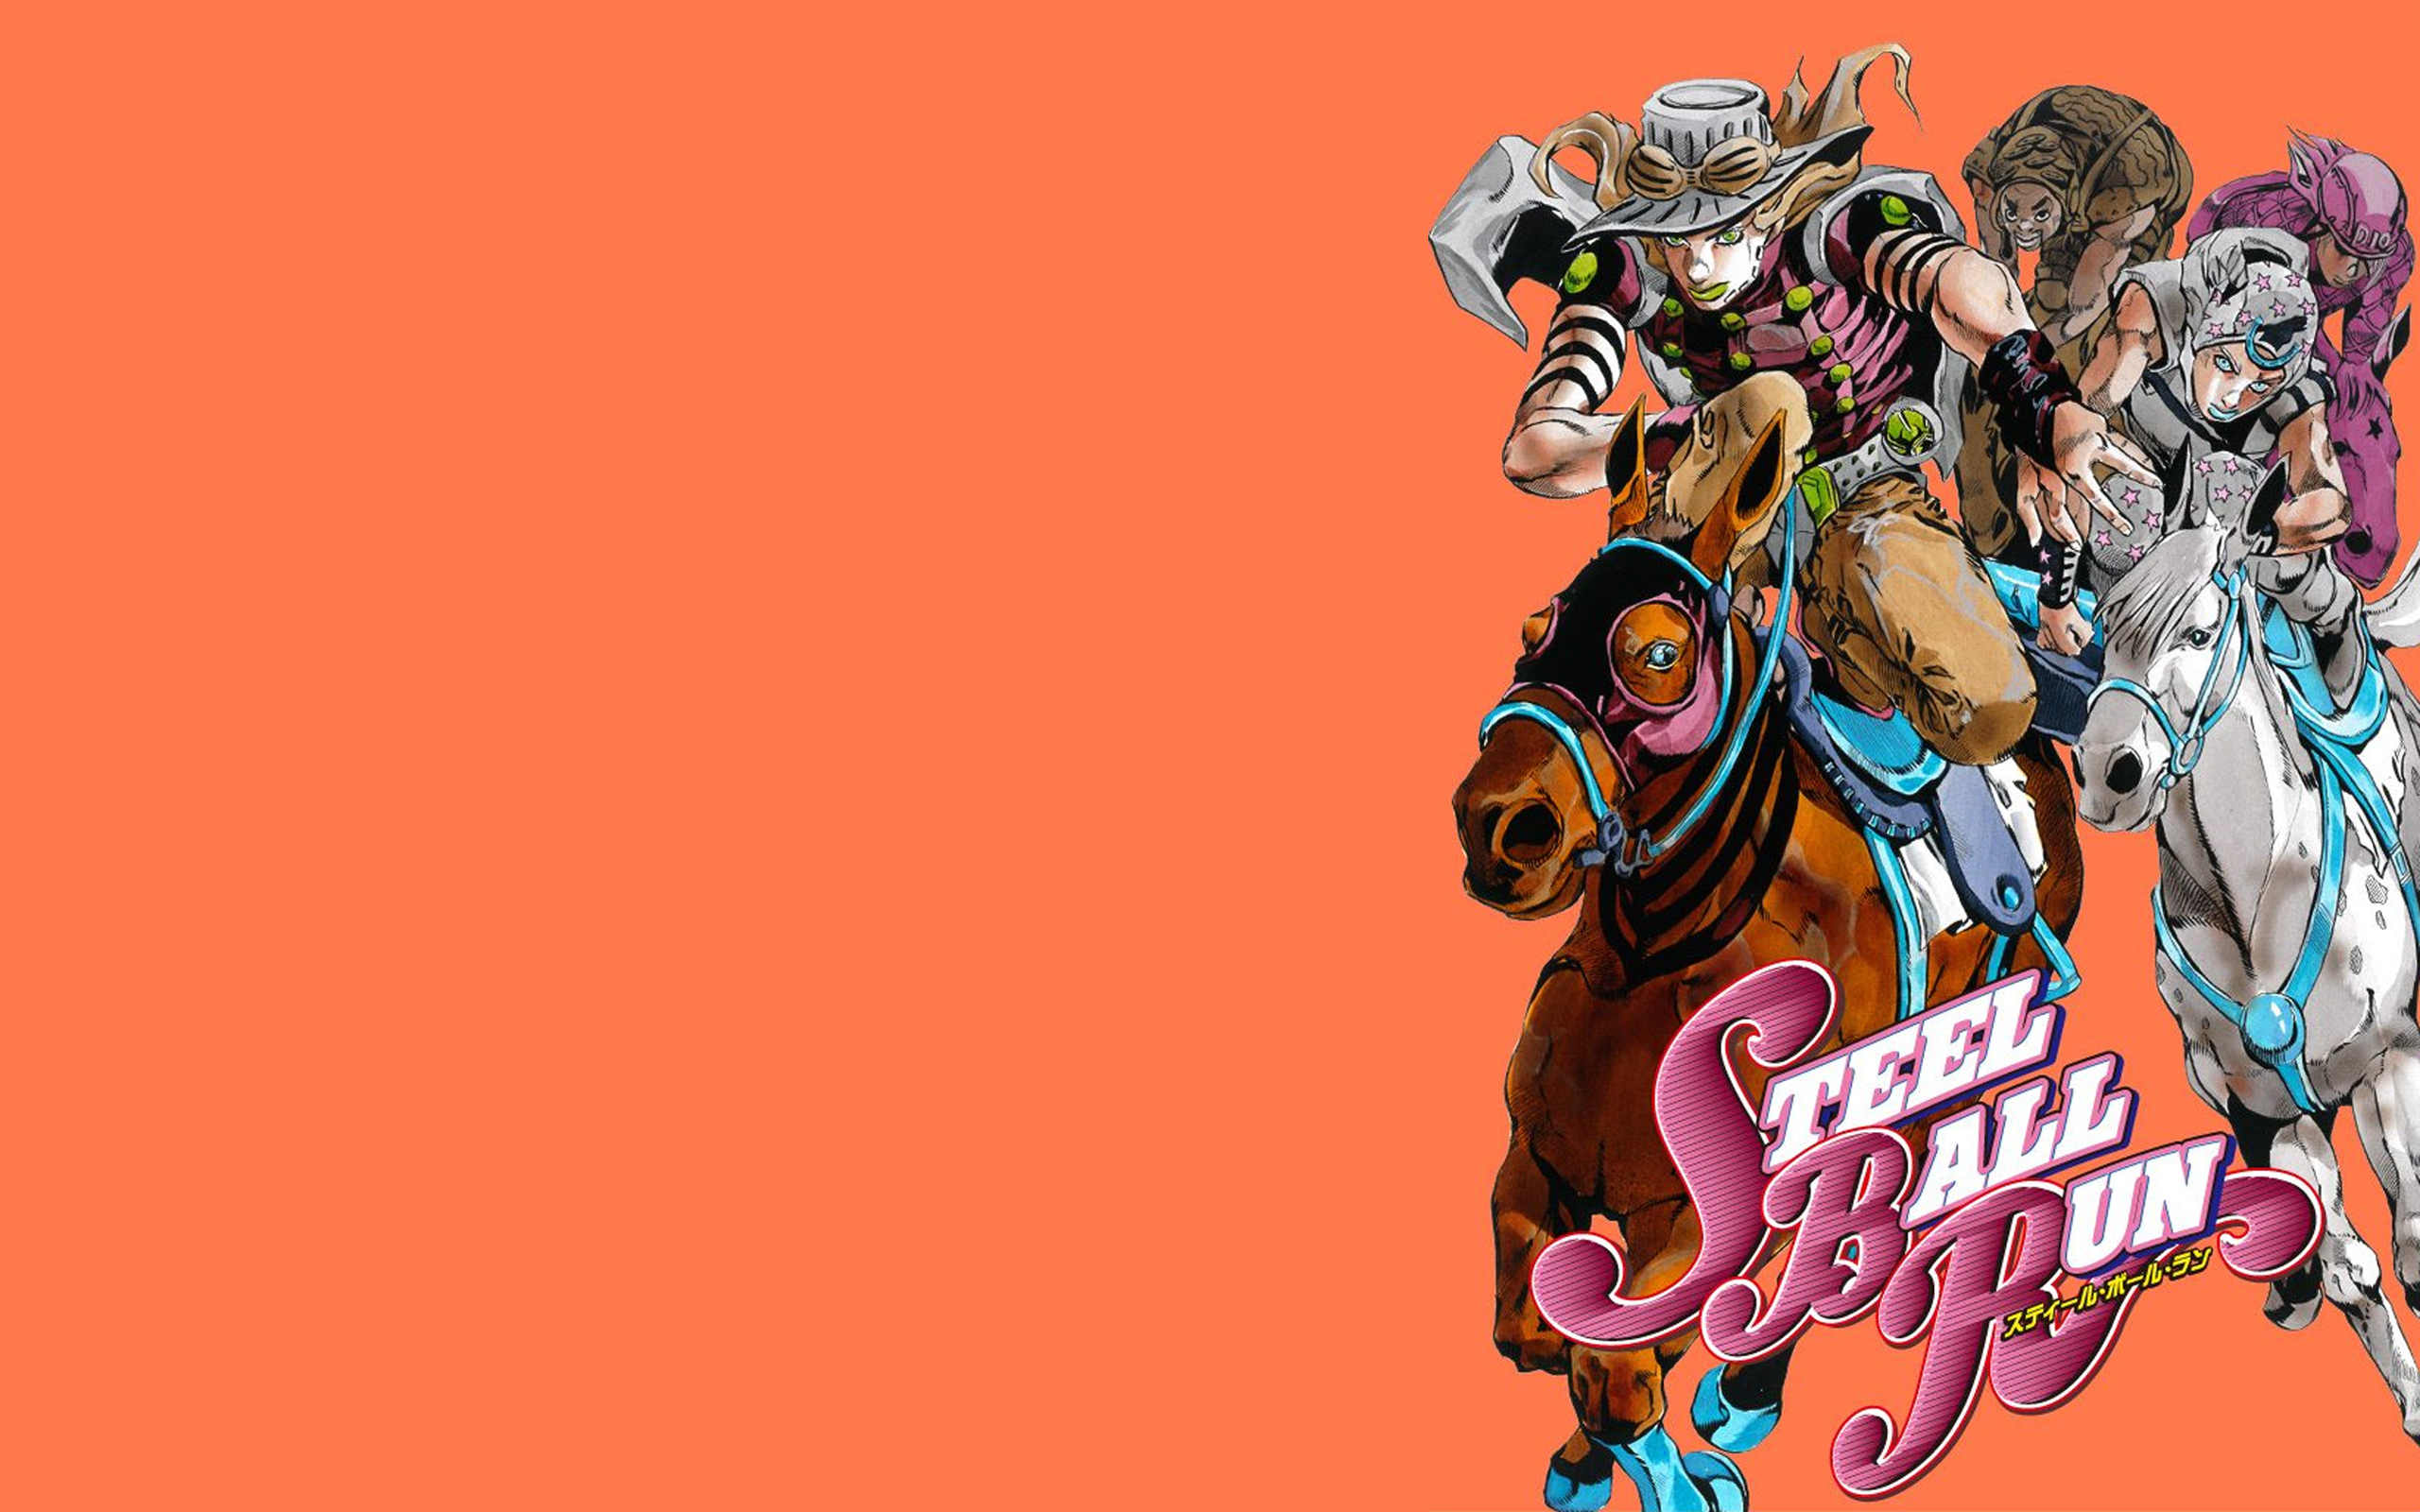 Steel Ball Run Wallpaper Posted By Samantha Thompson